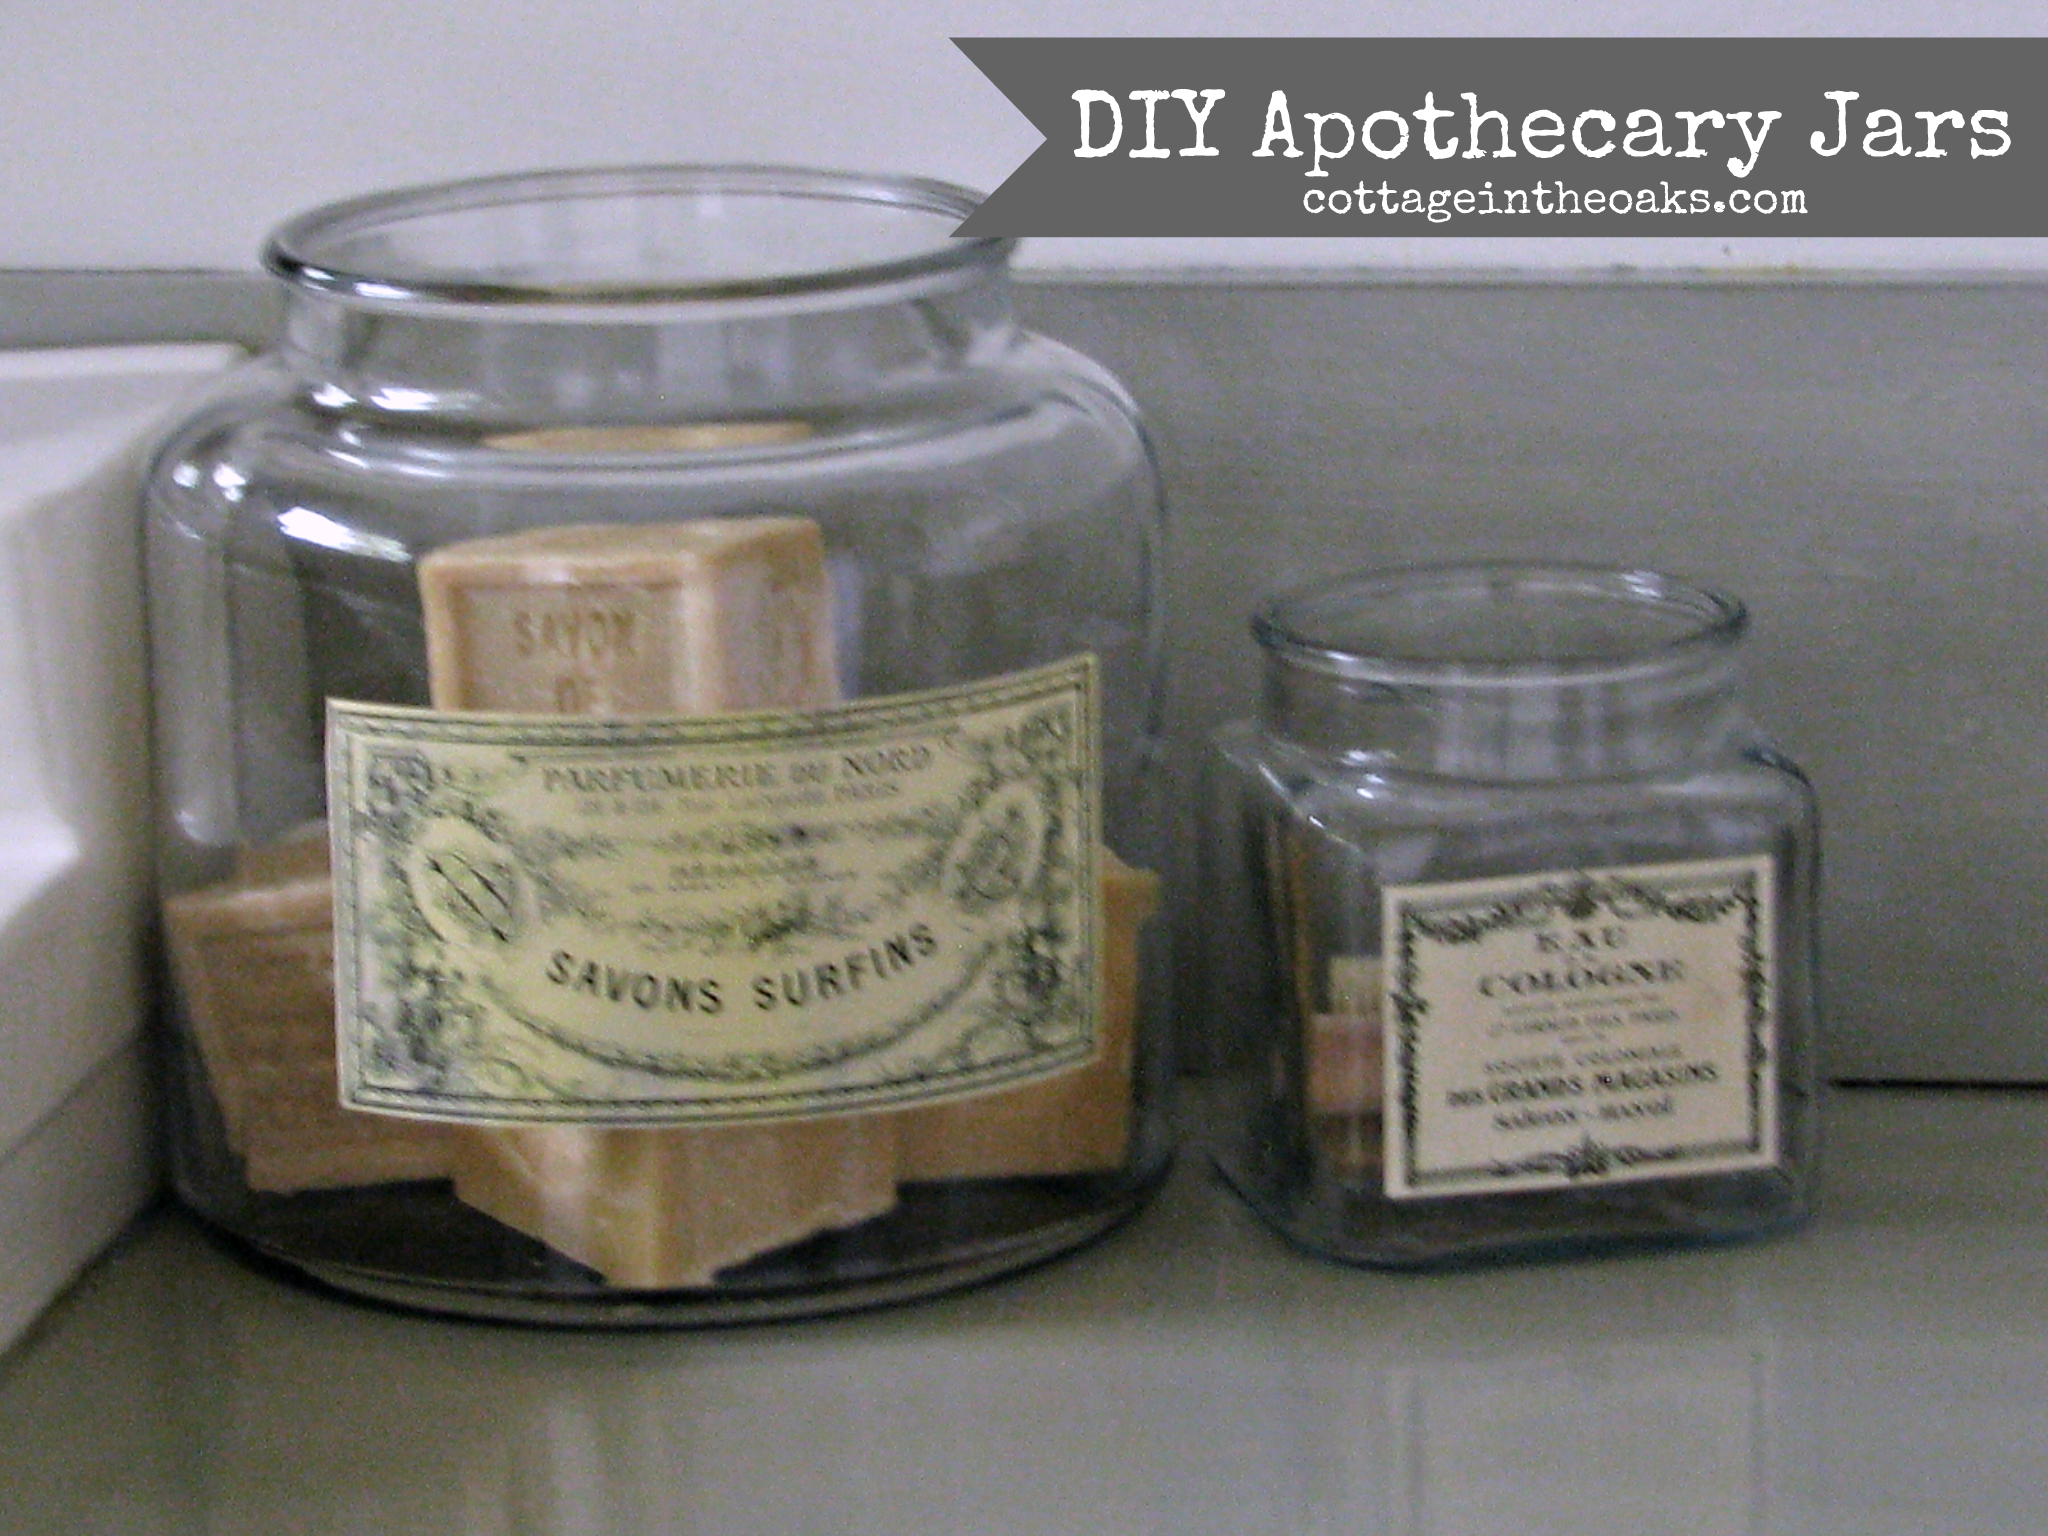 photograph regarding Free Printable Apothecary Jar Labels identified as Do-it-yourself Common Apothecary Jars